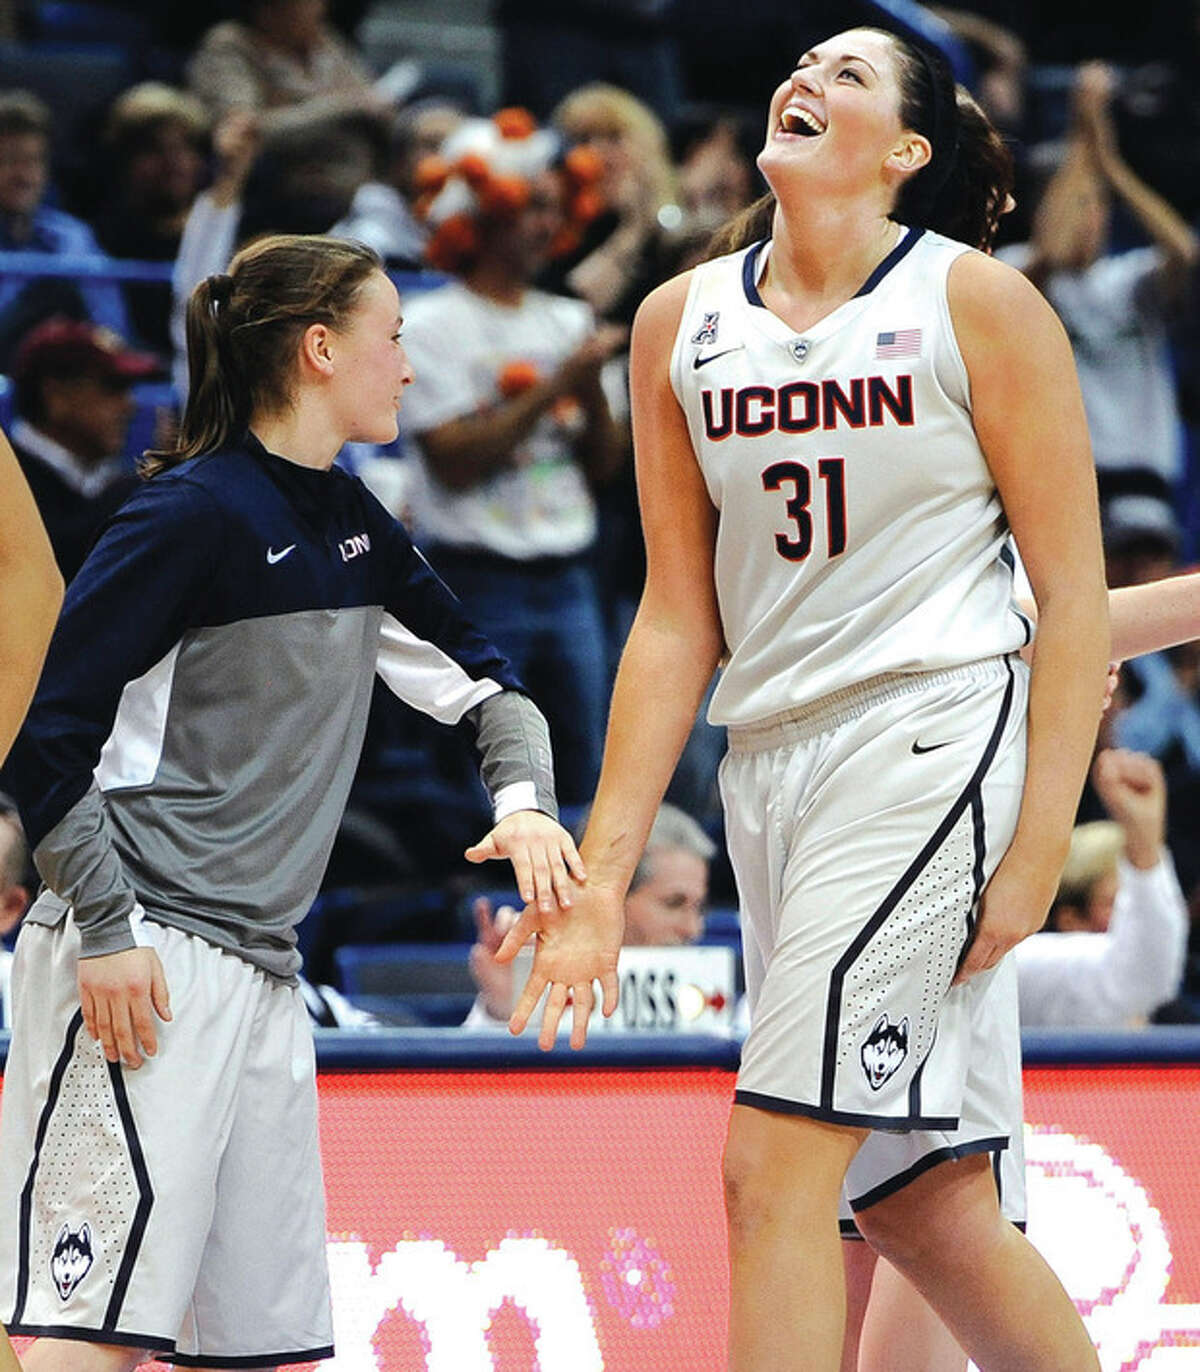 AP photo UConn's Stefanie Dolson, right, is all smiles as she leaves the court and is greeted by teammate Tierney Lawlor during a second-half time out in Wednesday night's game against Oregon at the XL Center. The 6-5 senior center became the second player in UConn women's hoop history to record a triple-double. Dolson collected 26 points, 14 rebounds and 11 assists in UConn's 114-68 victory.